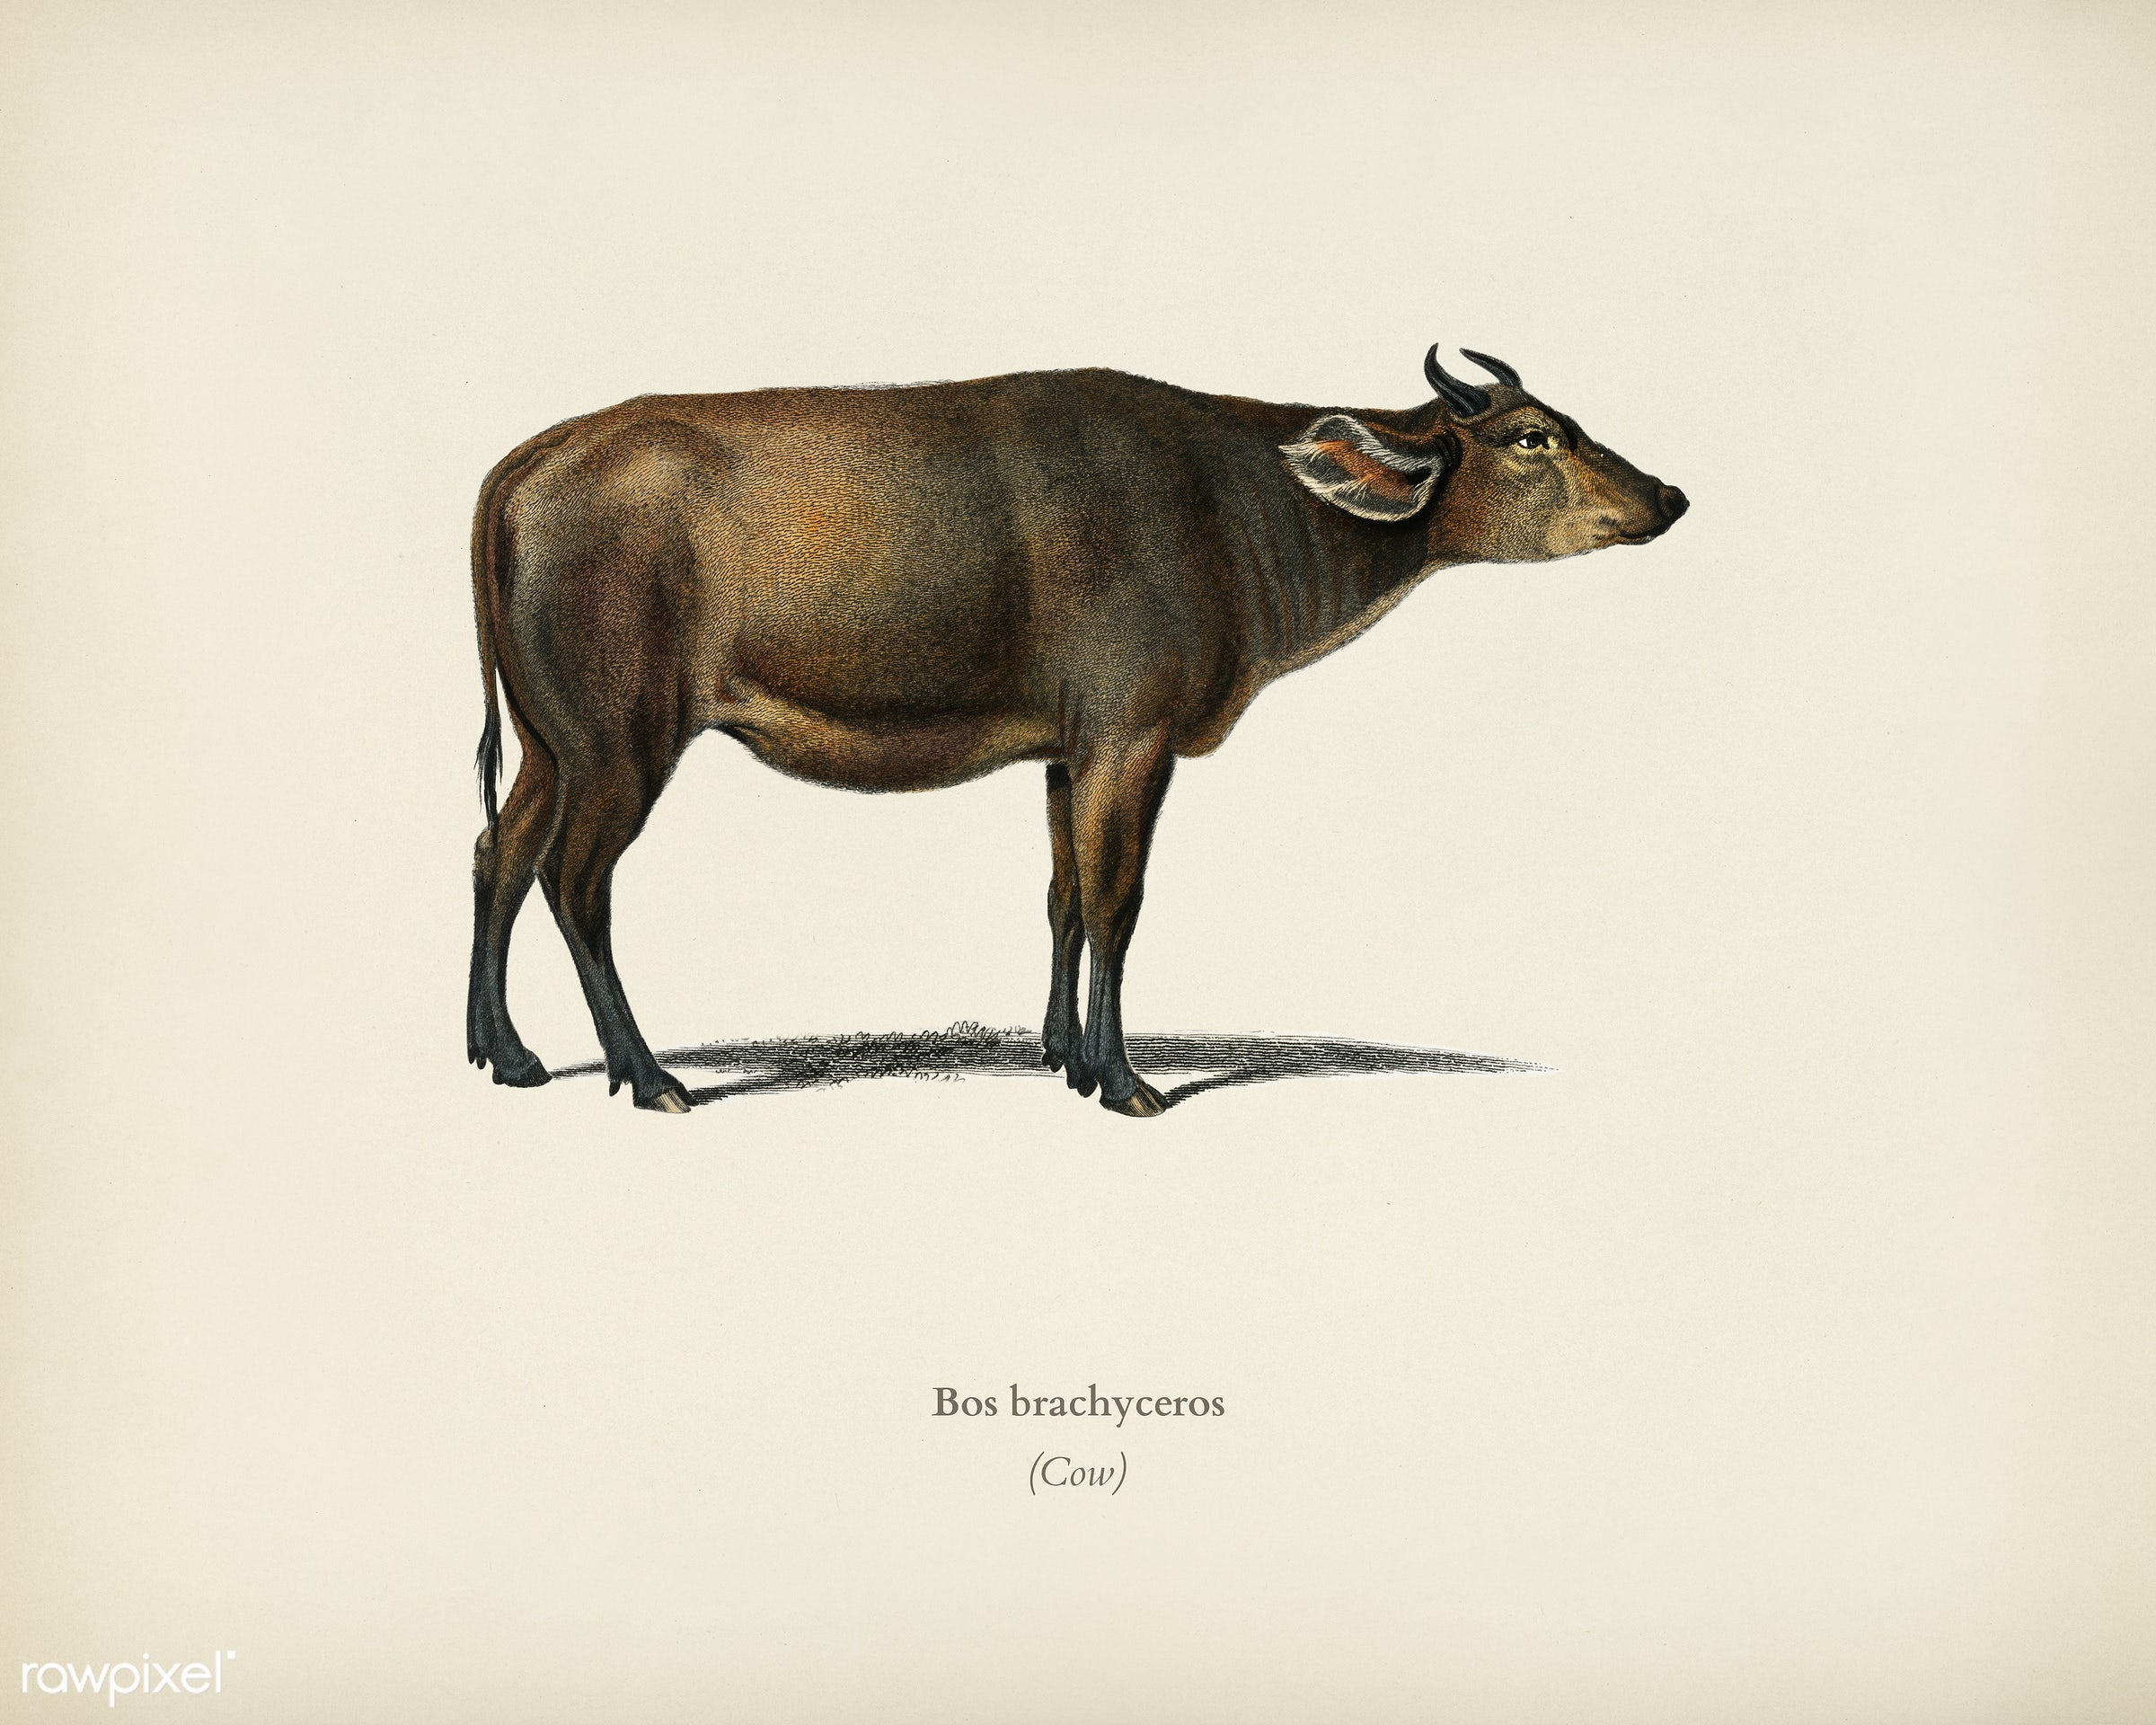 Cow (Bos brachyceros) illustrated by Charles Dessalines D' Orbigny (1806-1876). Digitally enhanced from our own 1892...